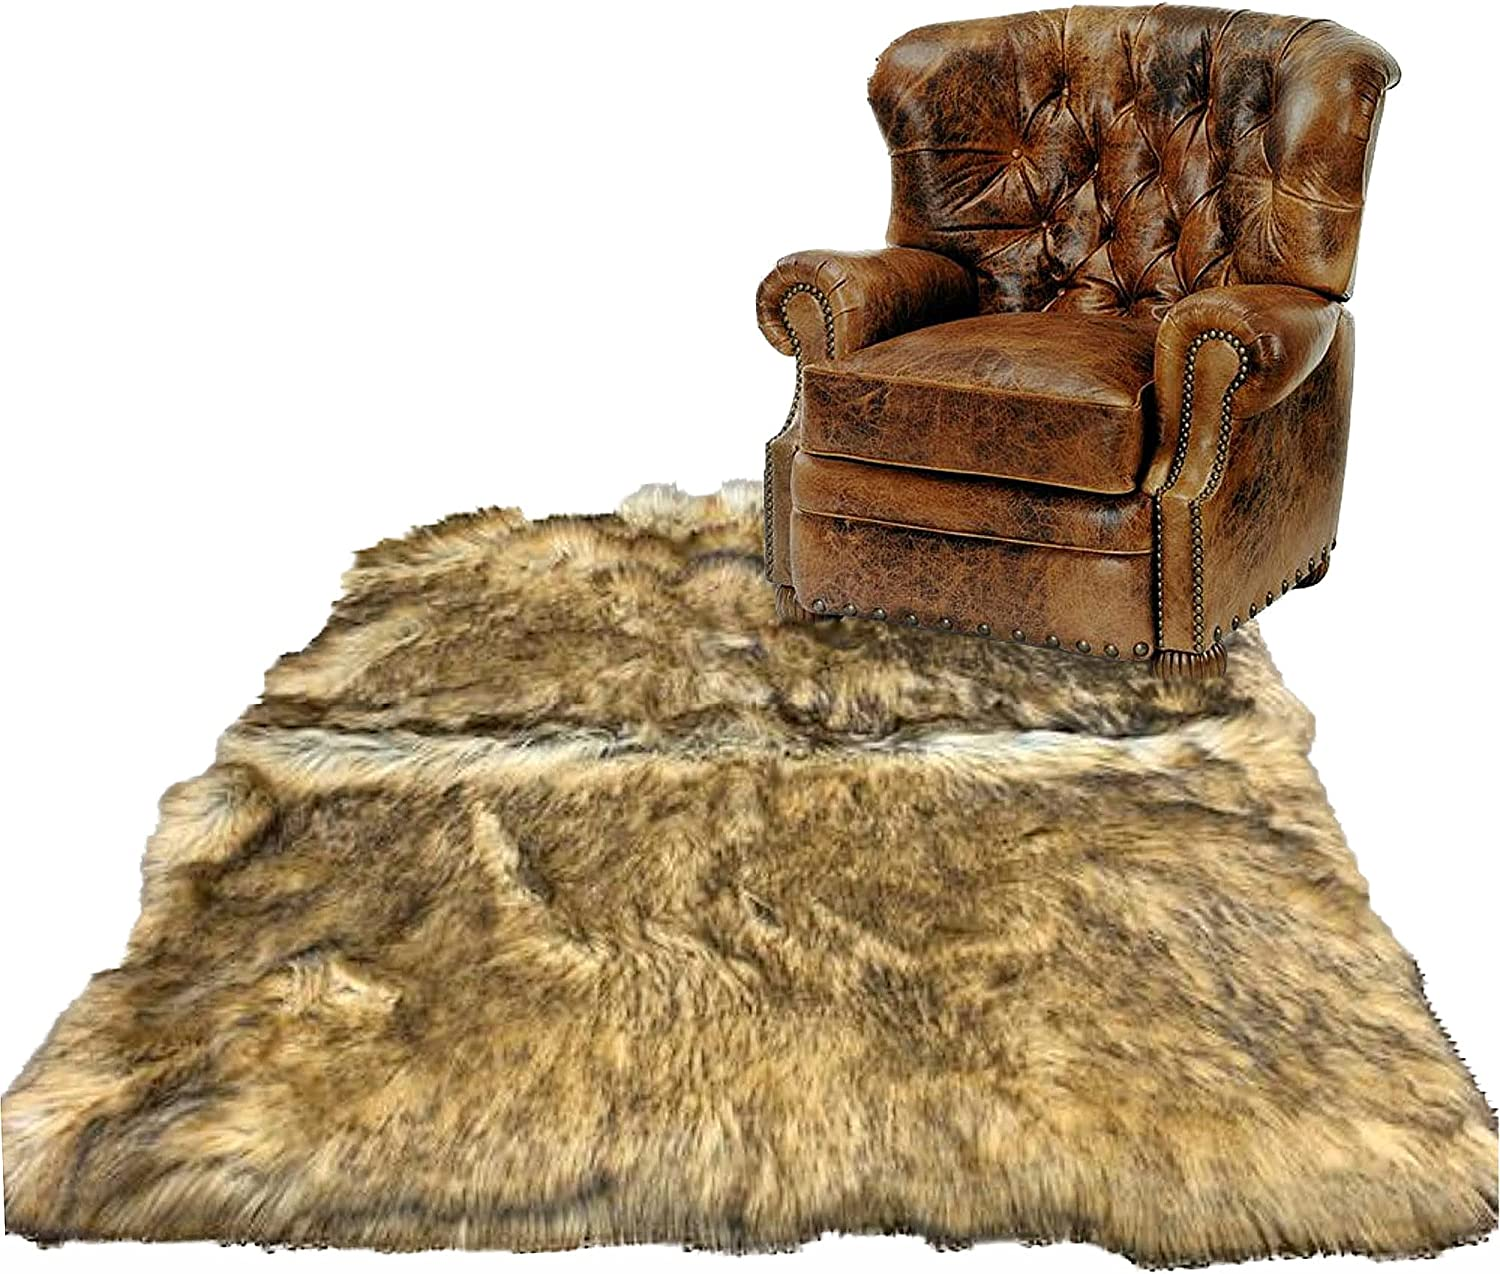 Fur Accents Faux Golden Tan San Diego Mall Skin Rug Wolf Plush Realistic New color